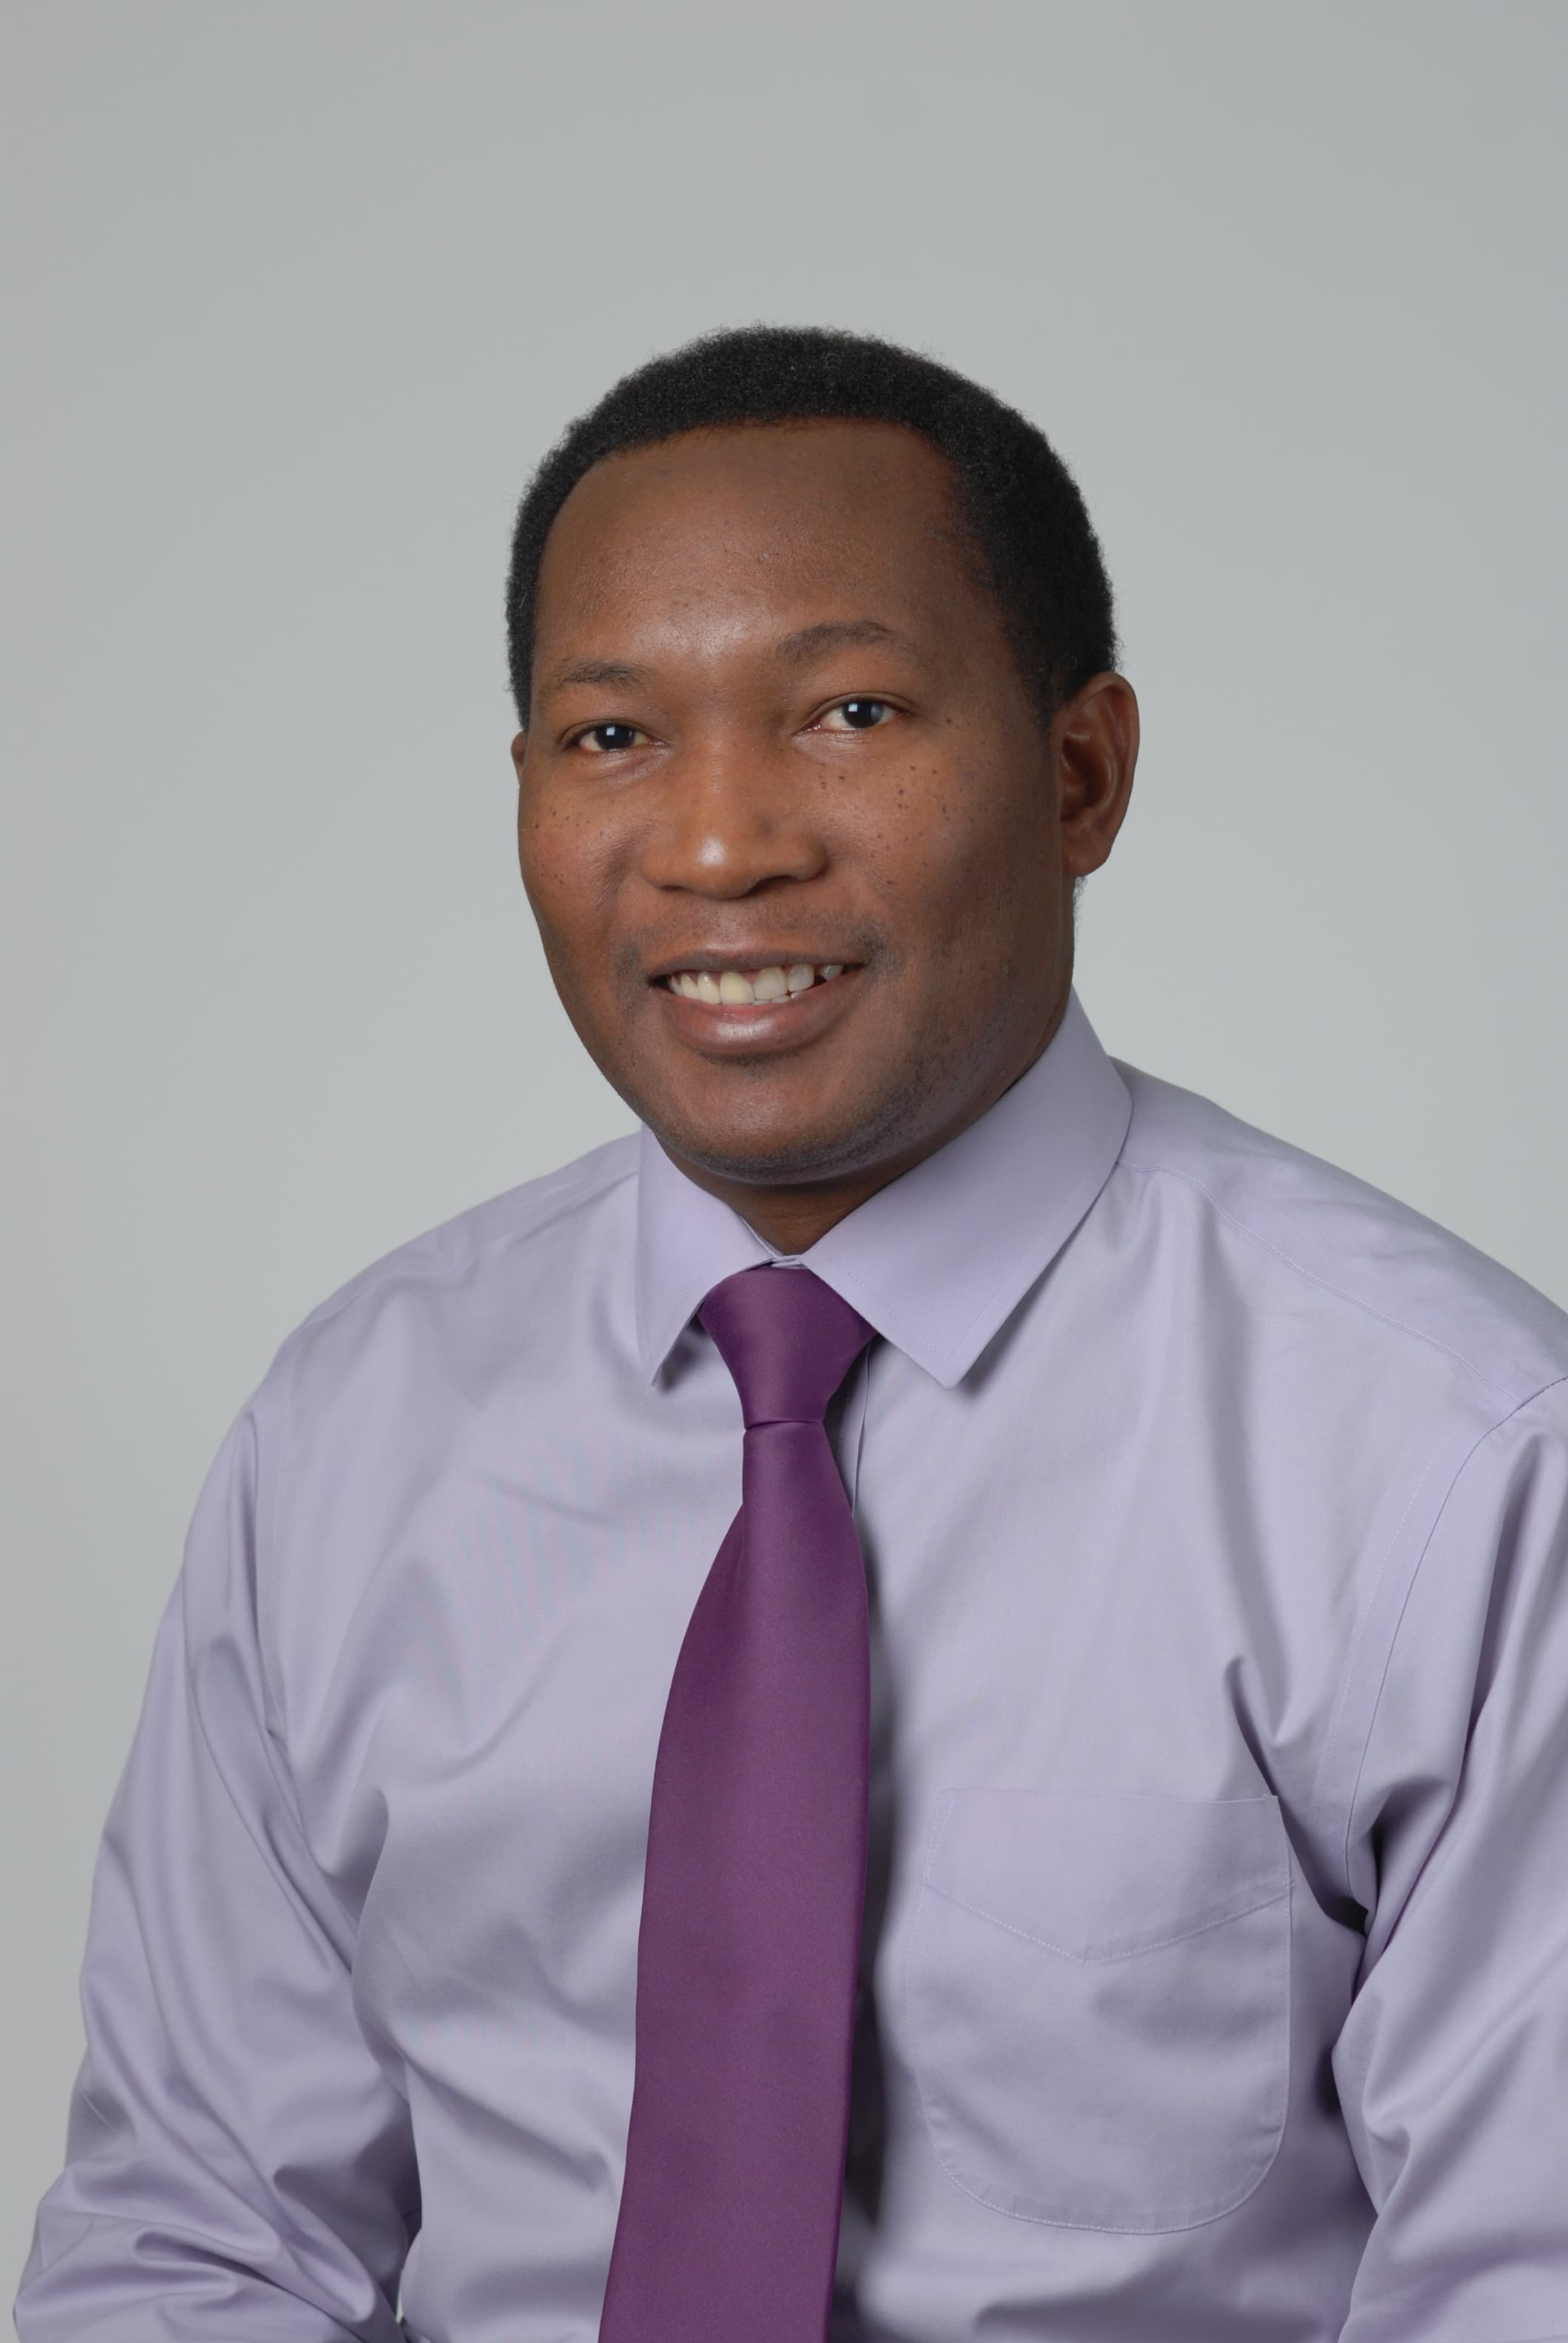 Evans M Machogu, MD, MS